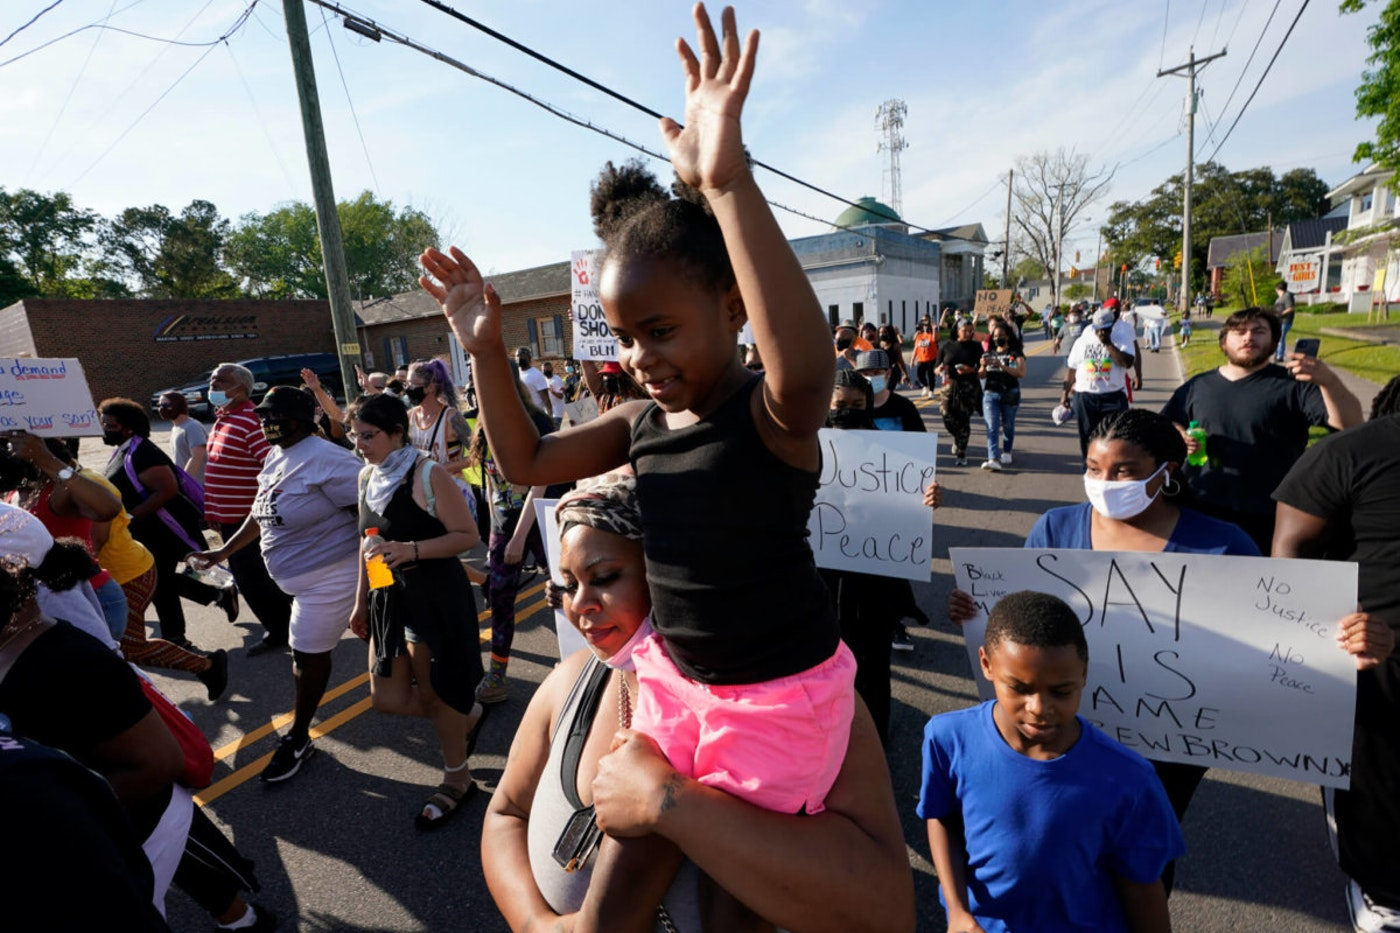 Protesters march along the streets to protest the shooting of Andrew Brown Jr. in Elizabeth City, N.C., Wednesday, April 28, 2021. On Wednesday, 85 days after Brown's shooting, the family filed a federal lawsuit, claiming they could not get justice in North Carolina state courts from local officials. (AP Photo/Steve Helber)